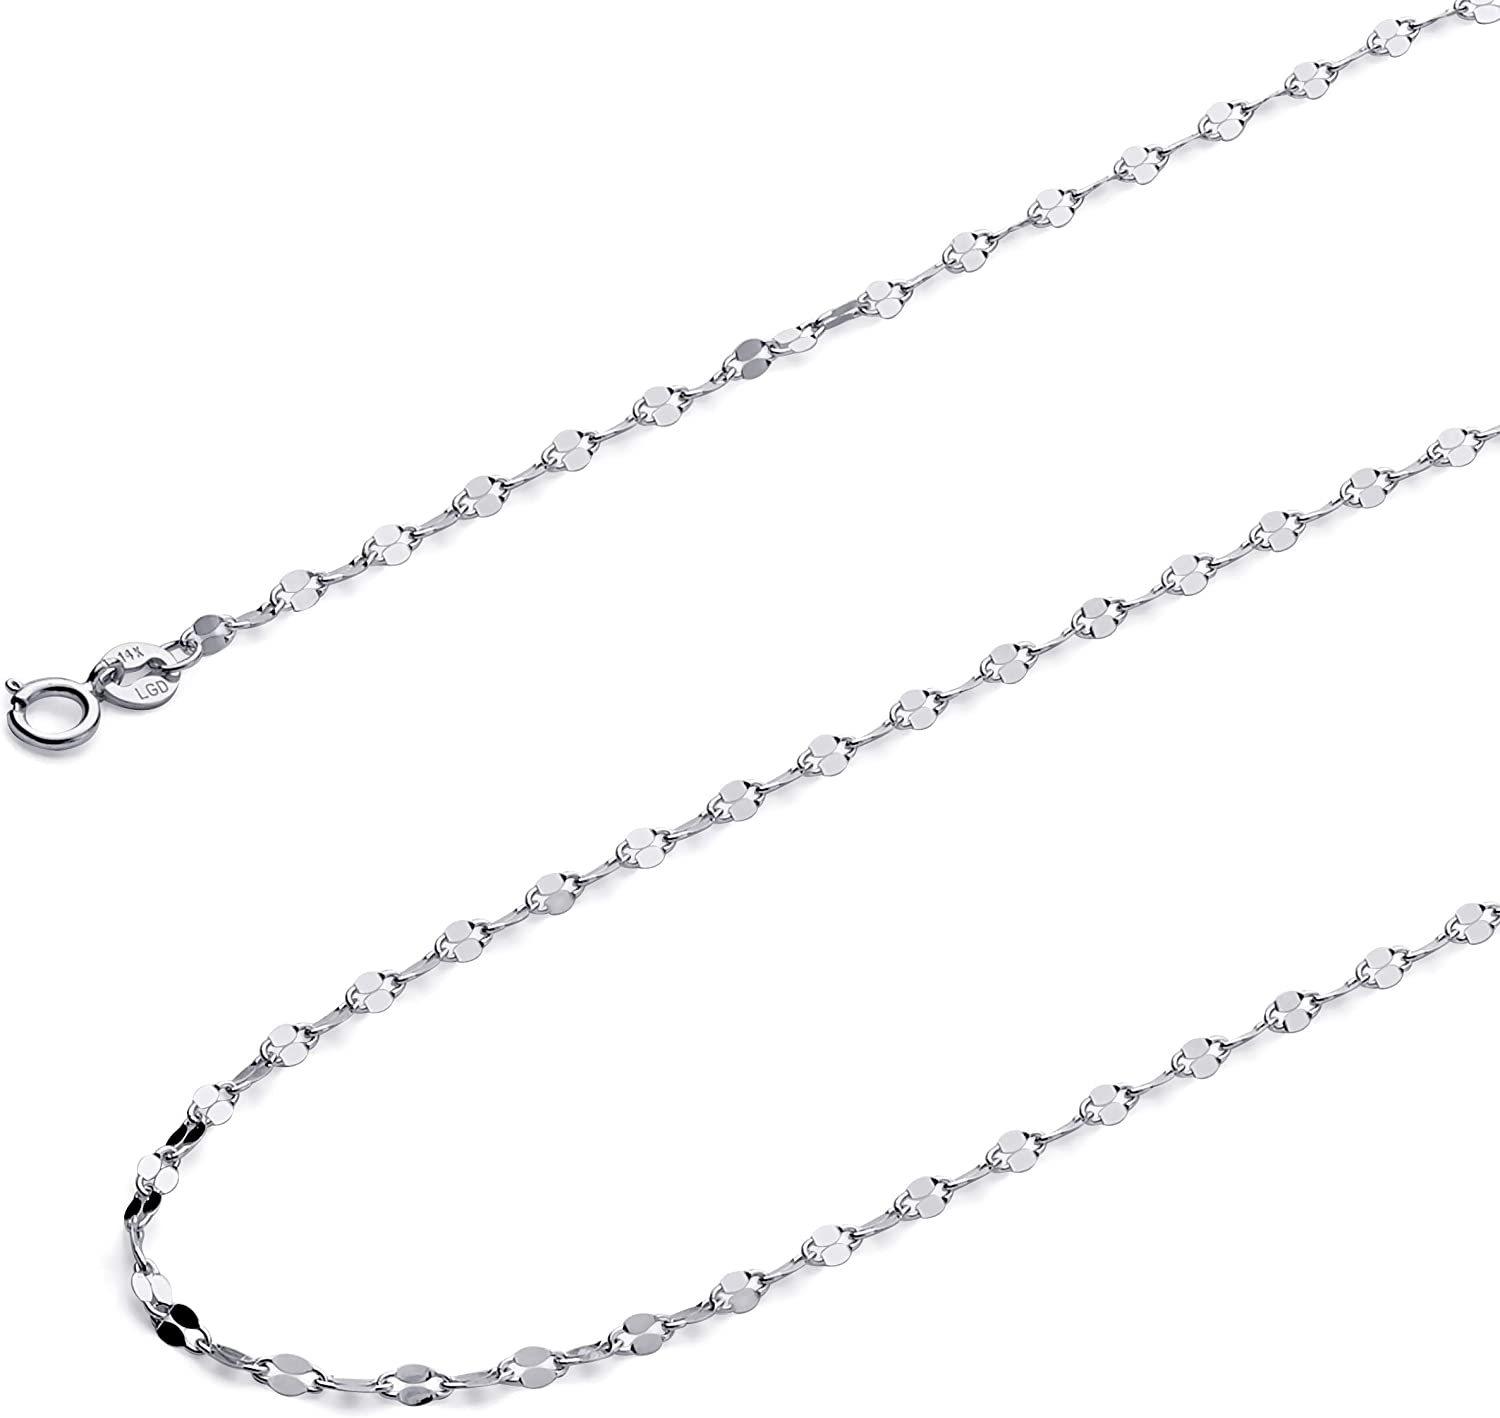 TGDJ 14k Yellow OR White Gold Solid 2mm Twisted Mirror Chain Necklace with Spring Ring Clasp